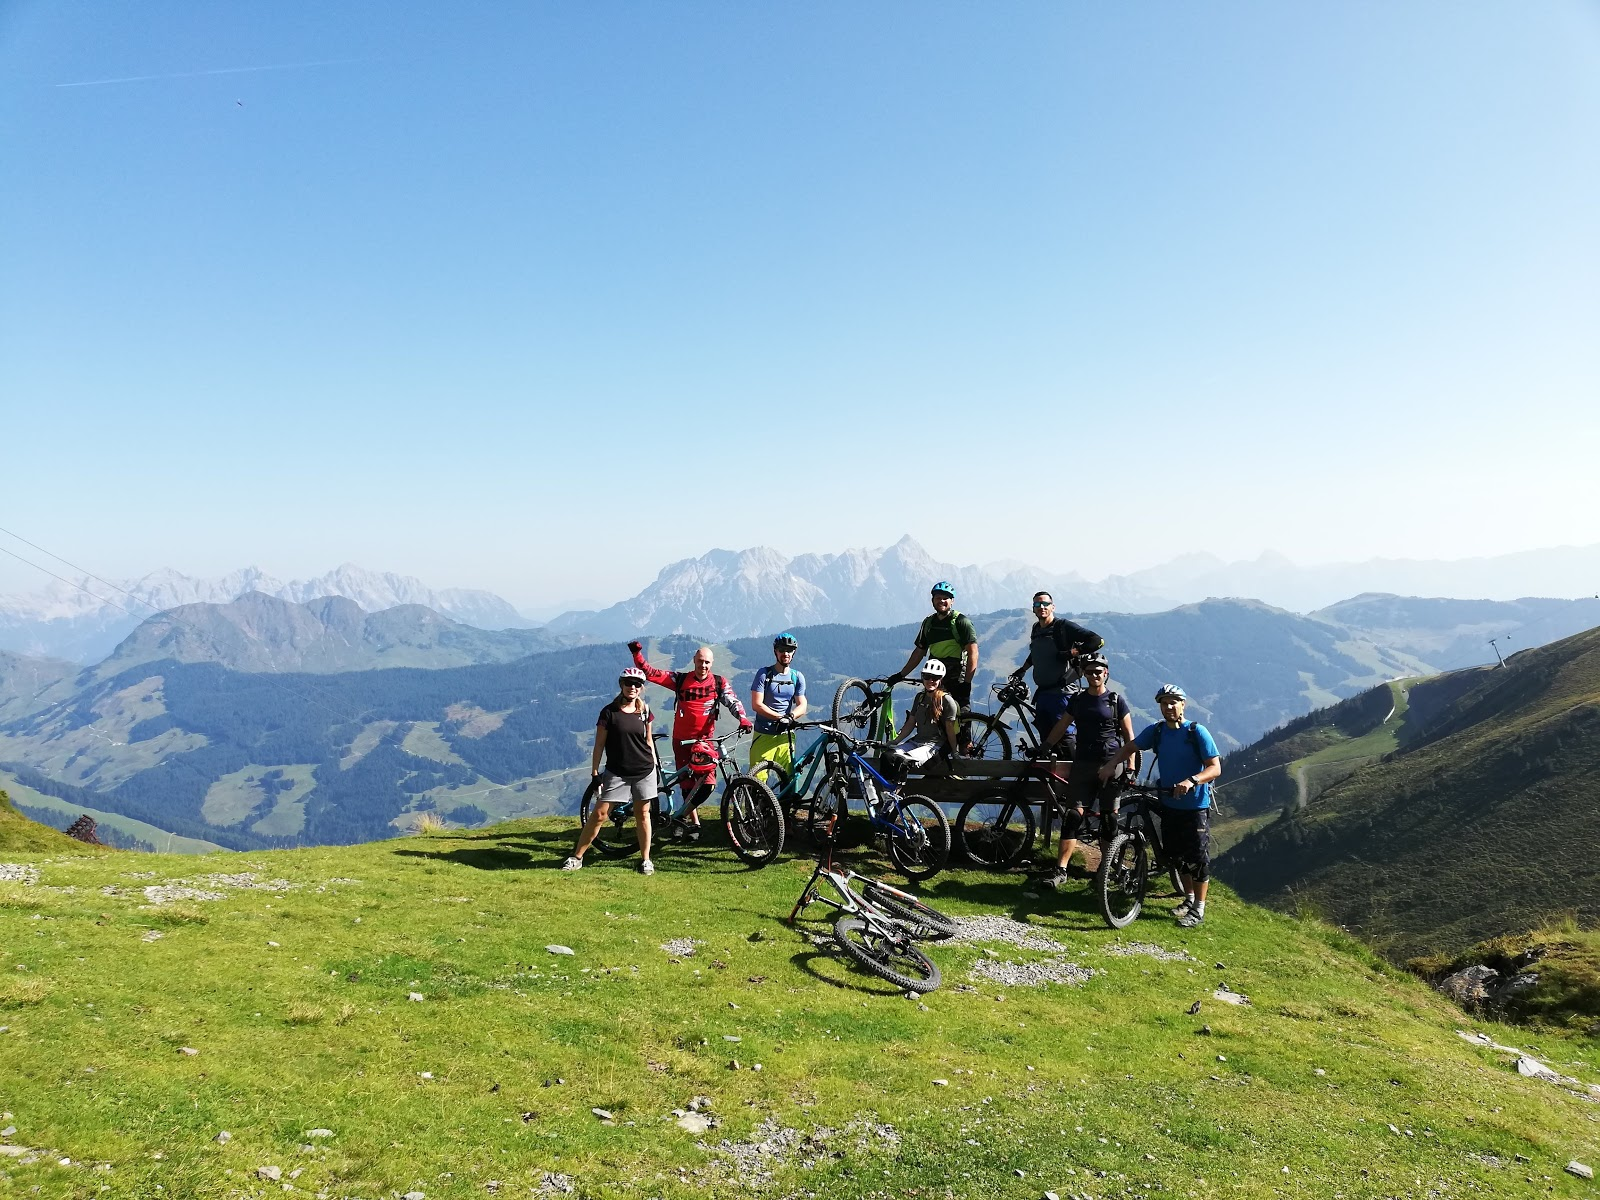 Saalbach mtb weekend - August 19